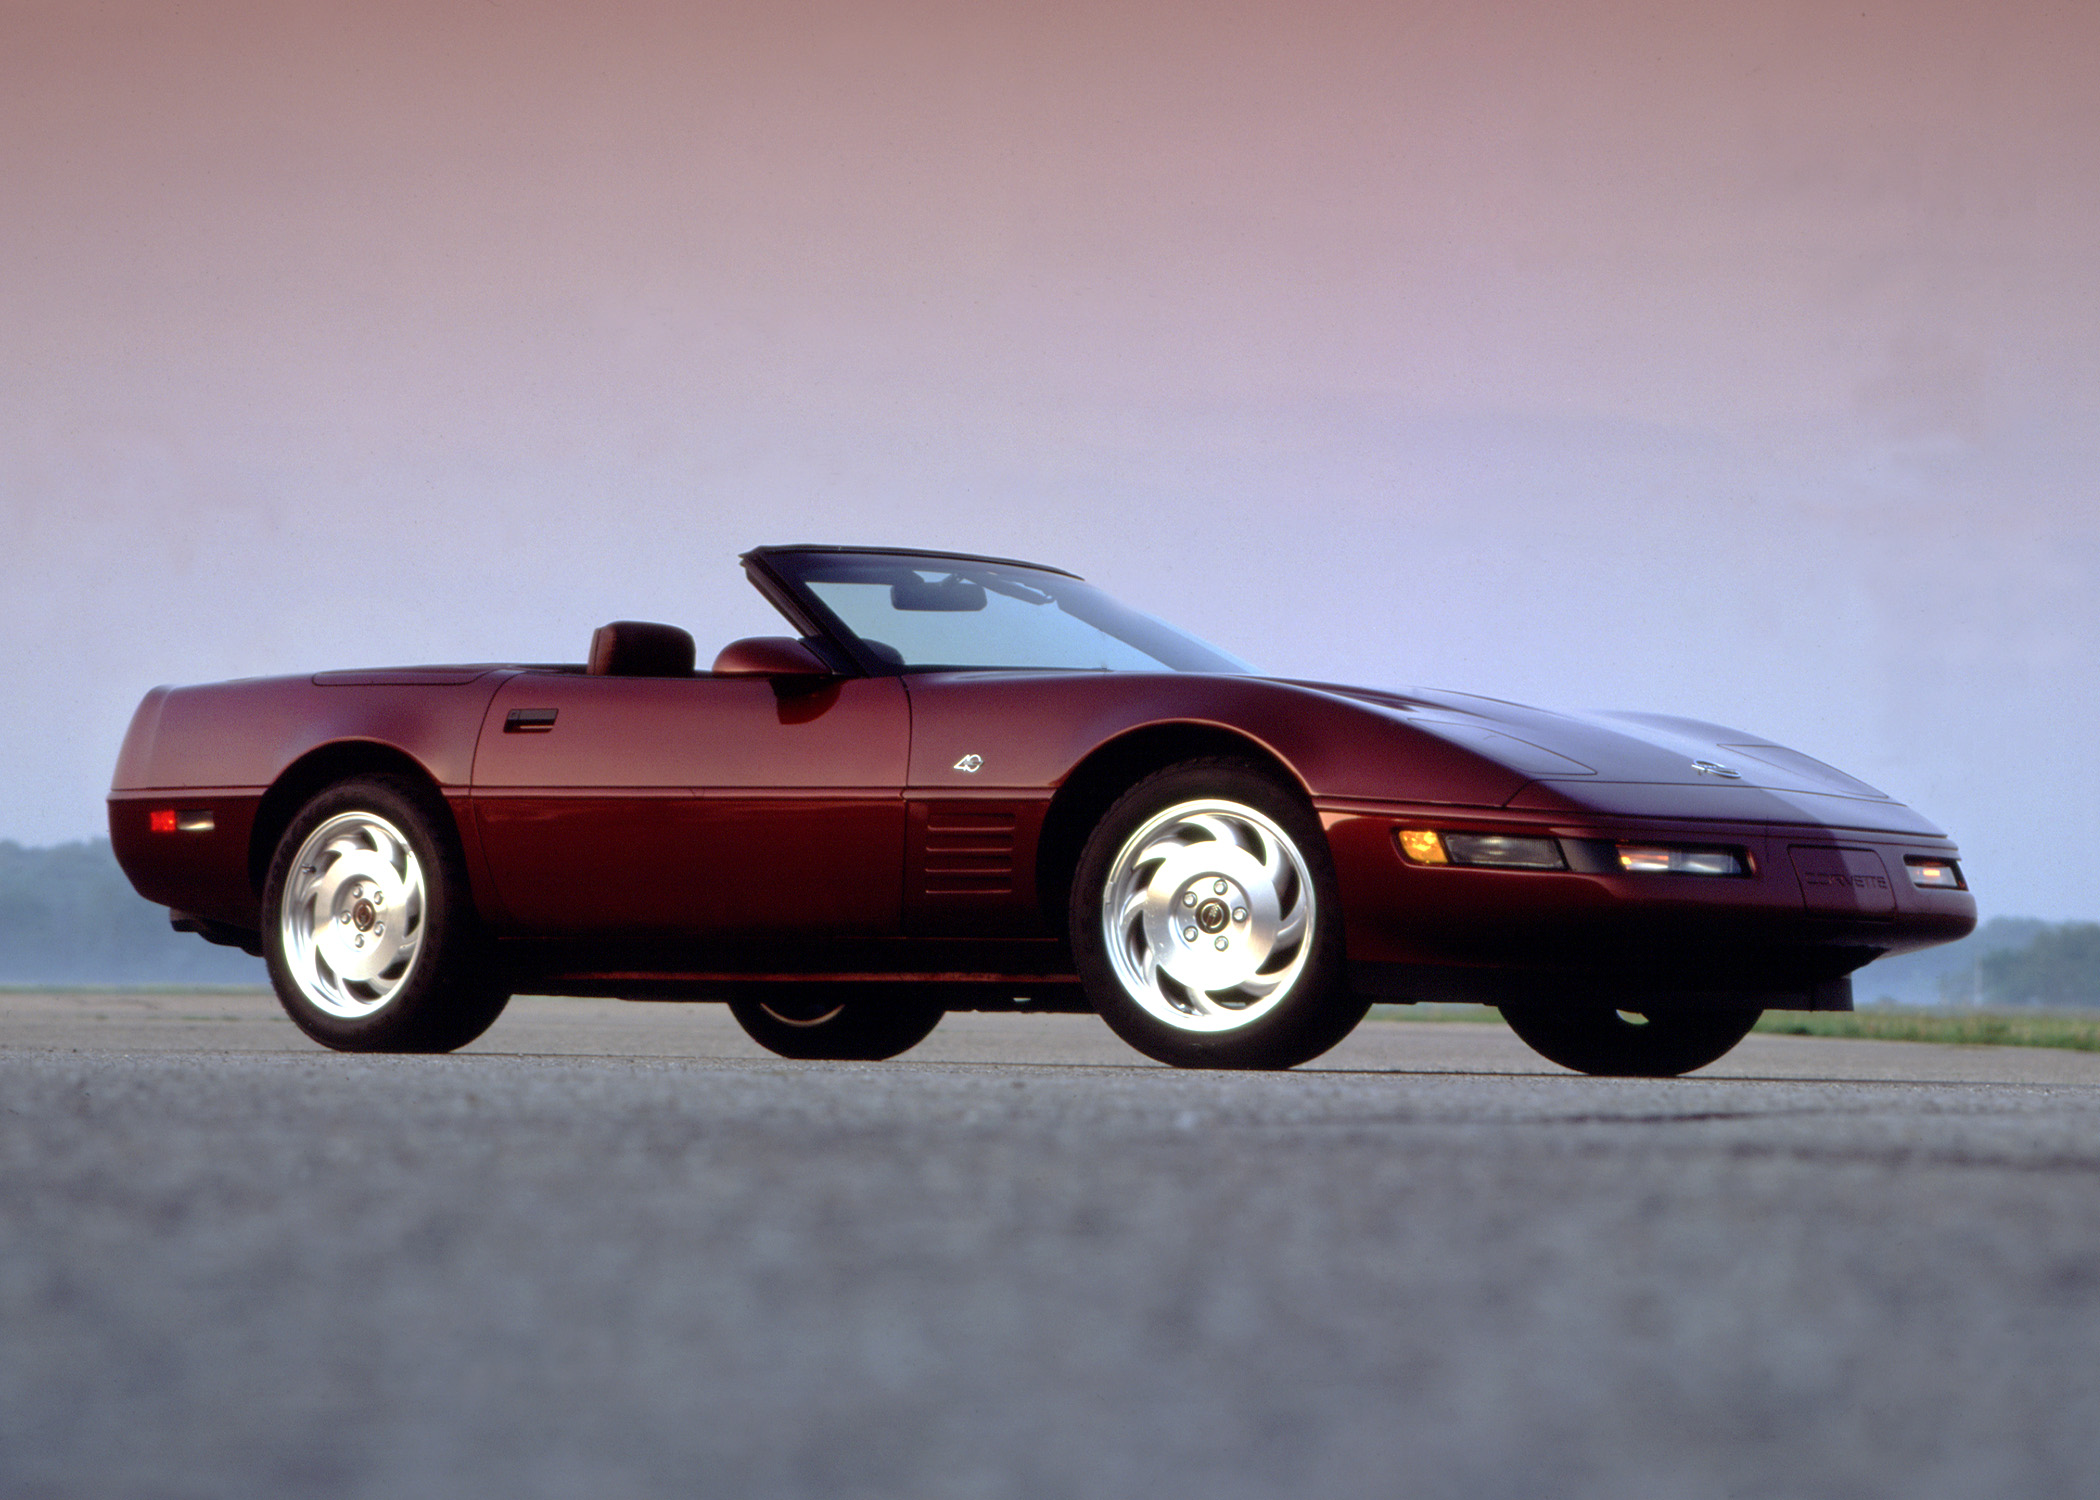 A maroon C4 Corvette was the American sports car of the '90s, seen here at the front 3/4 angle